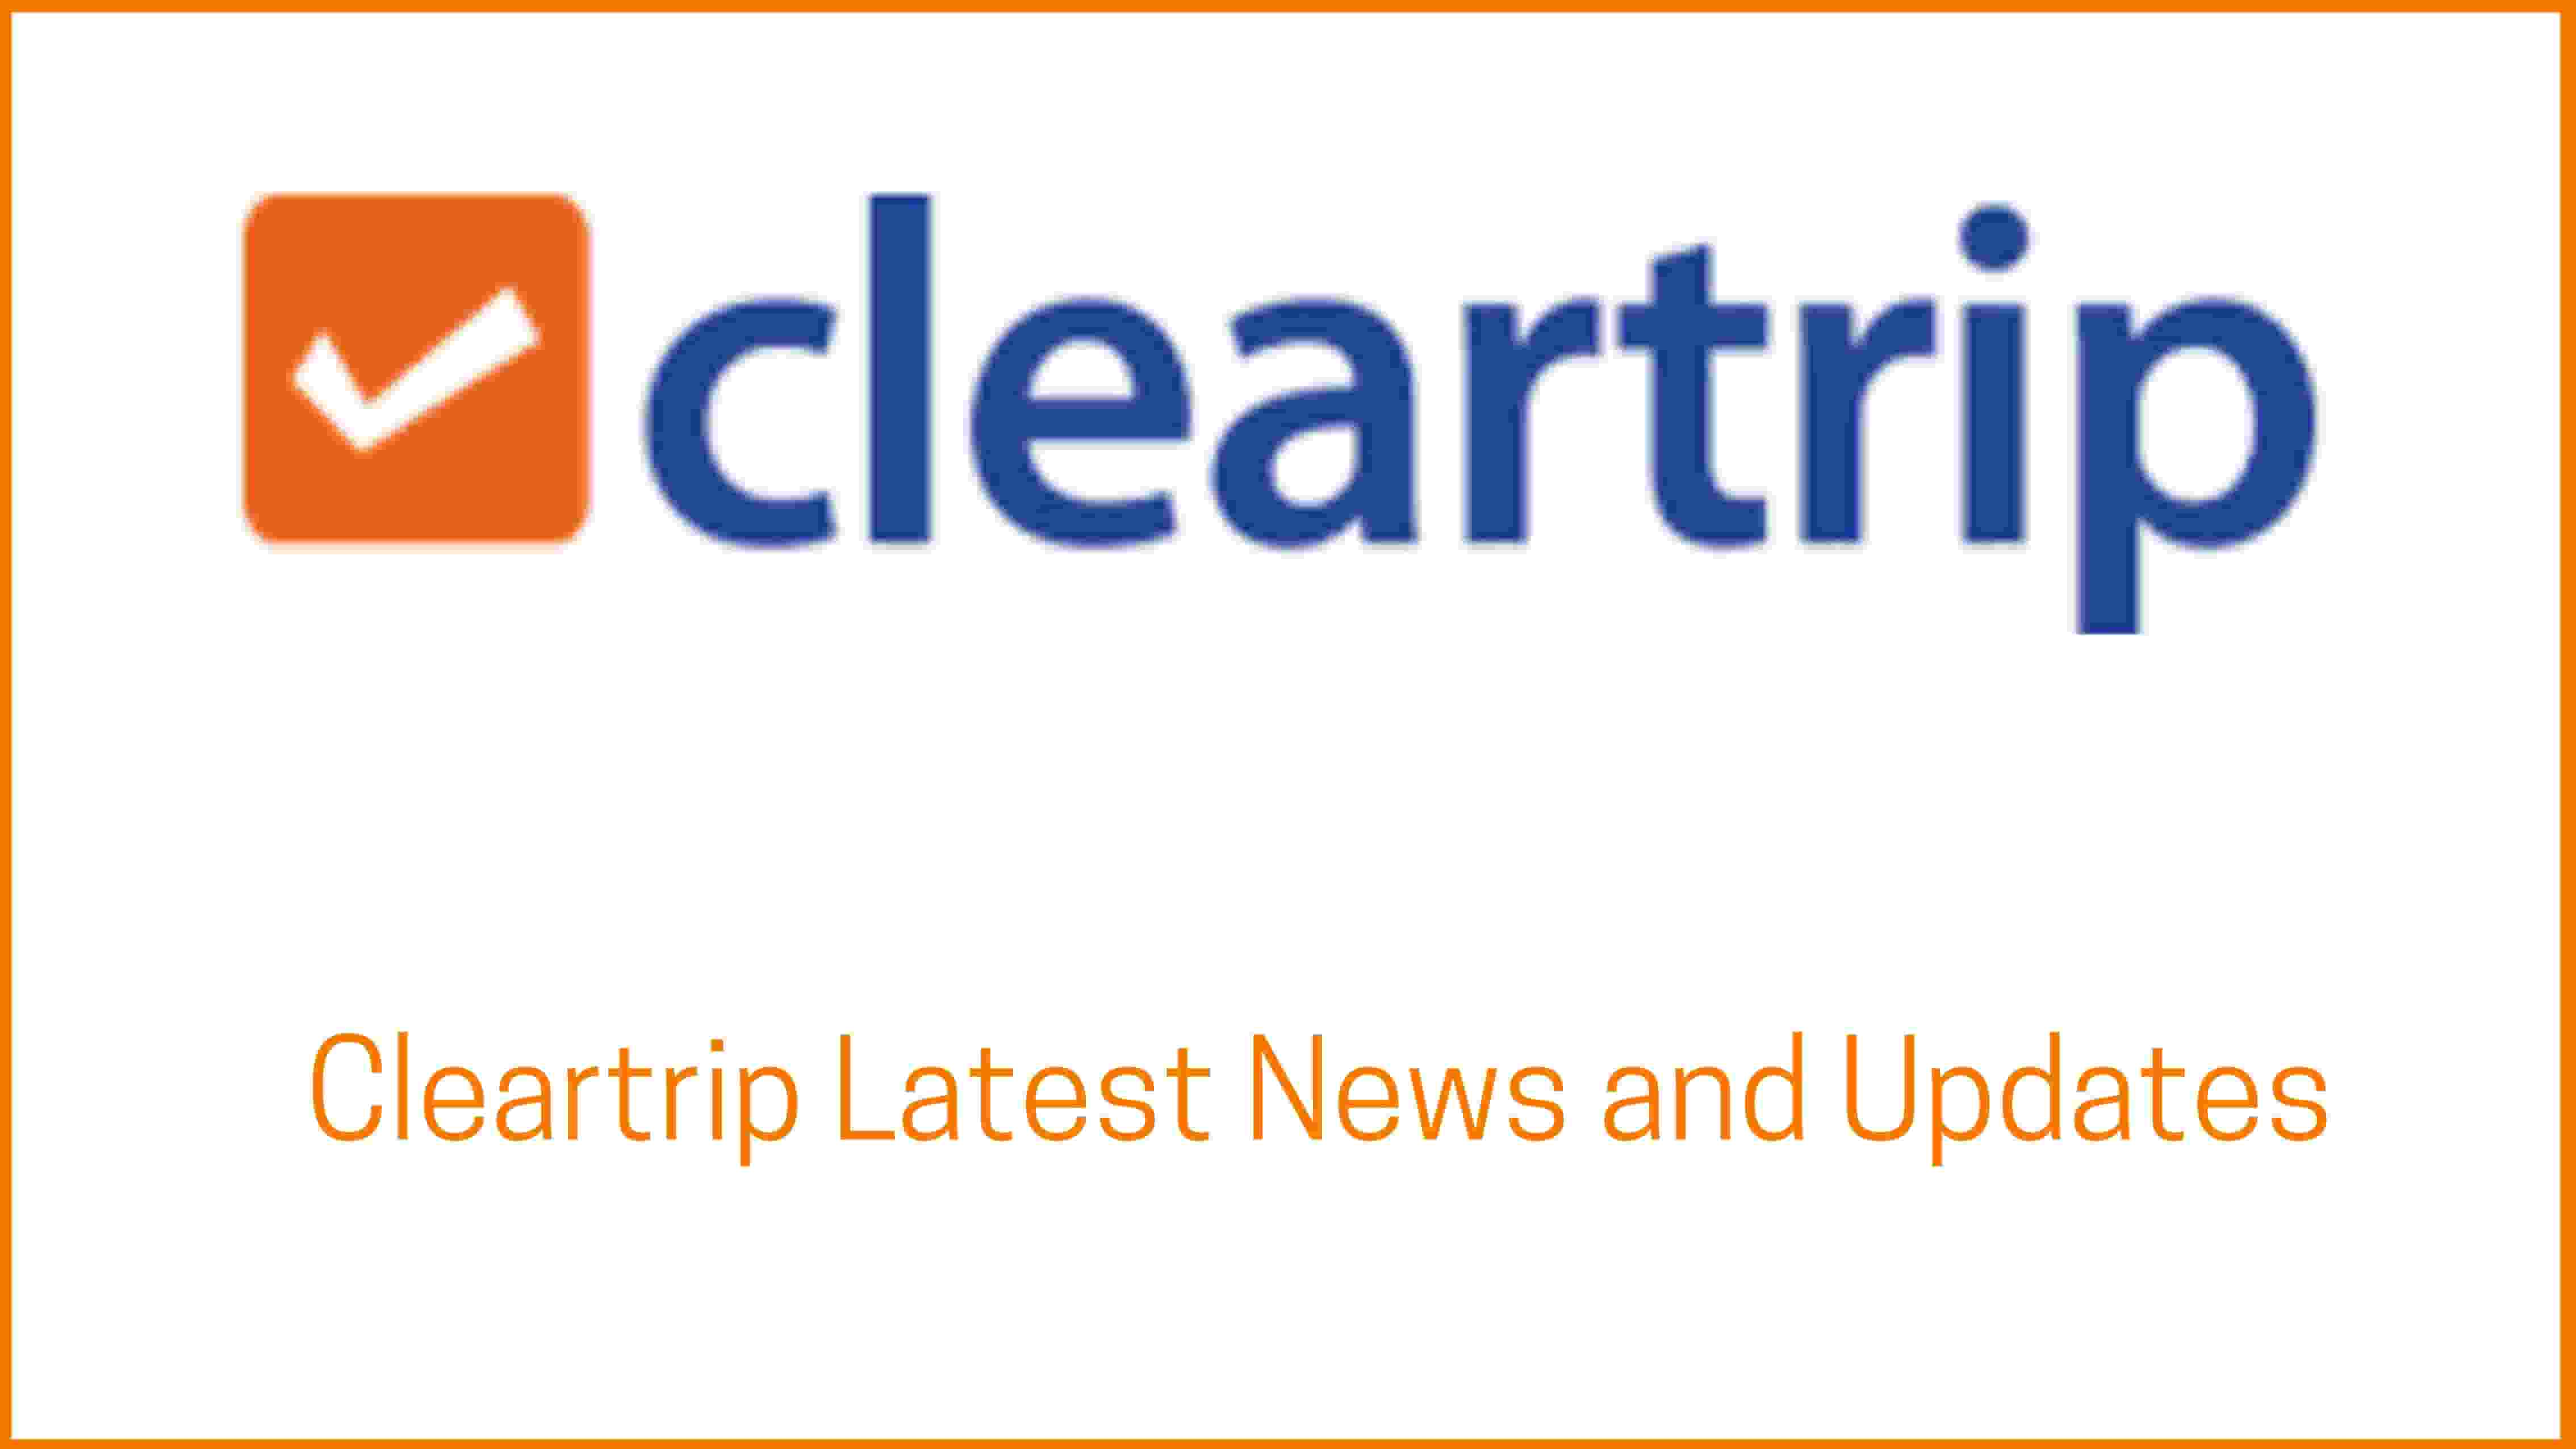 Cleartrip - Latest Startup News and Updates